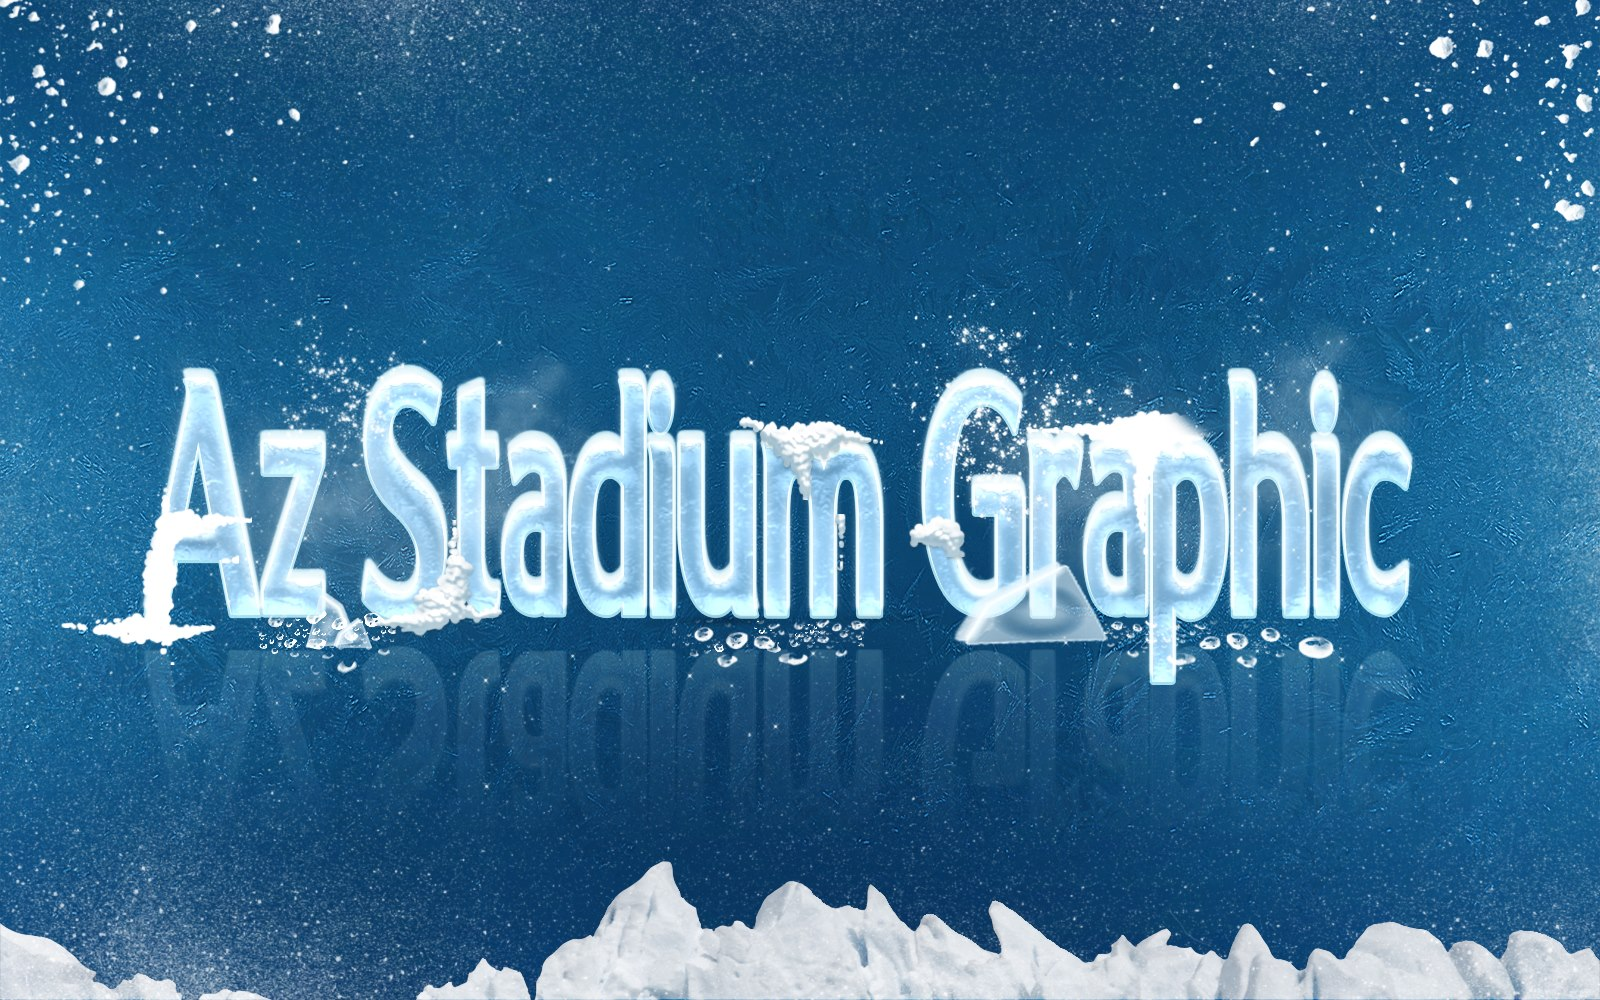 Az Stadium Winter Graphic For PES 2017 by Reda Ghazal